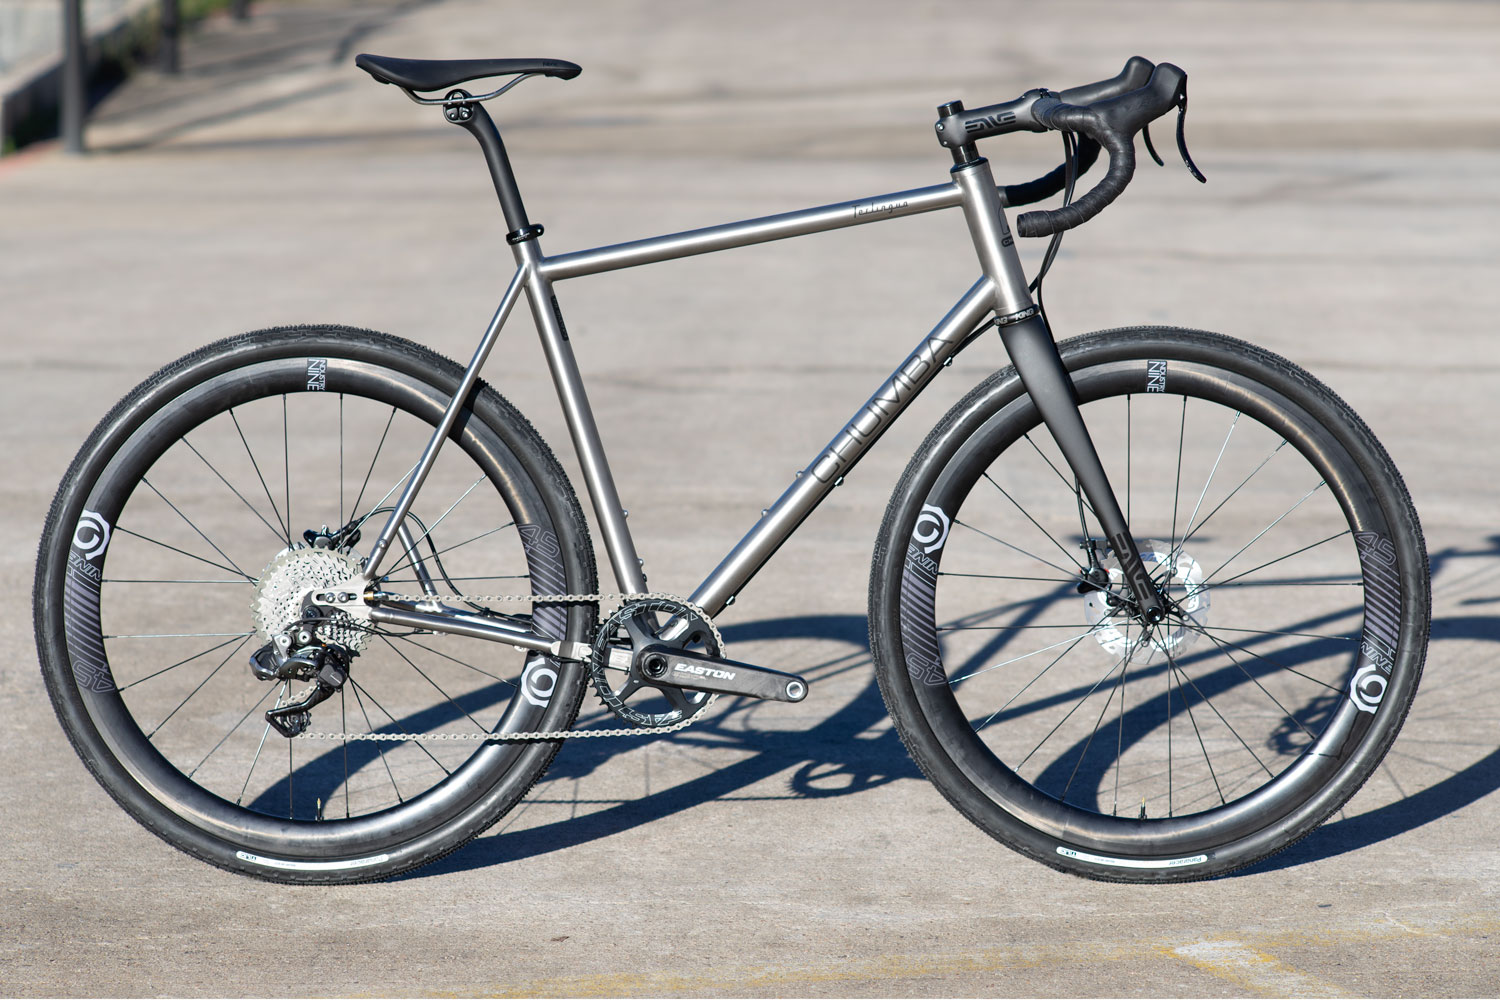 Terlingua-Titanium-Di2-Electronic-Shifting-Gravel-Bike-Industry-Nine2.jpg